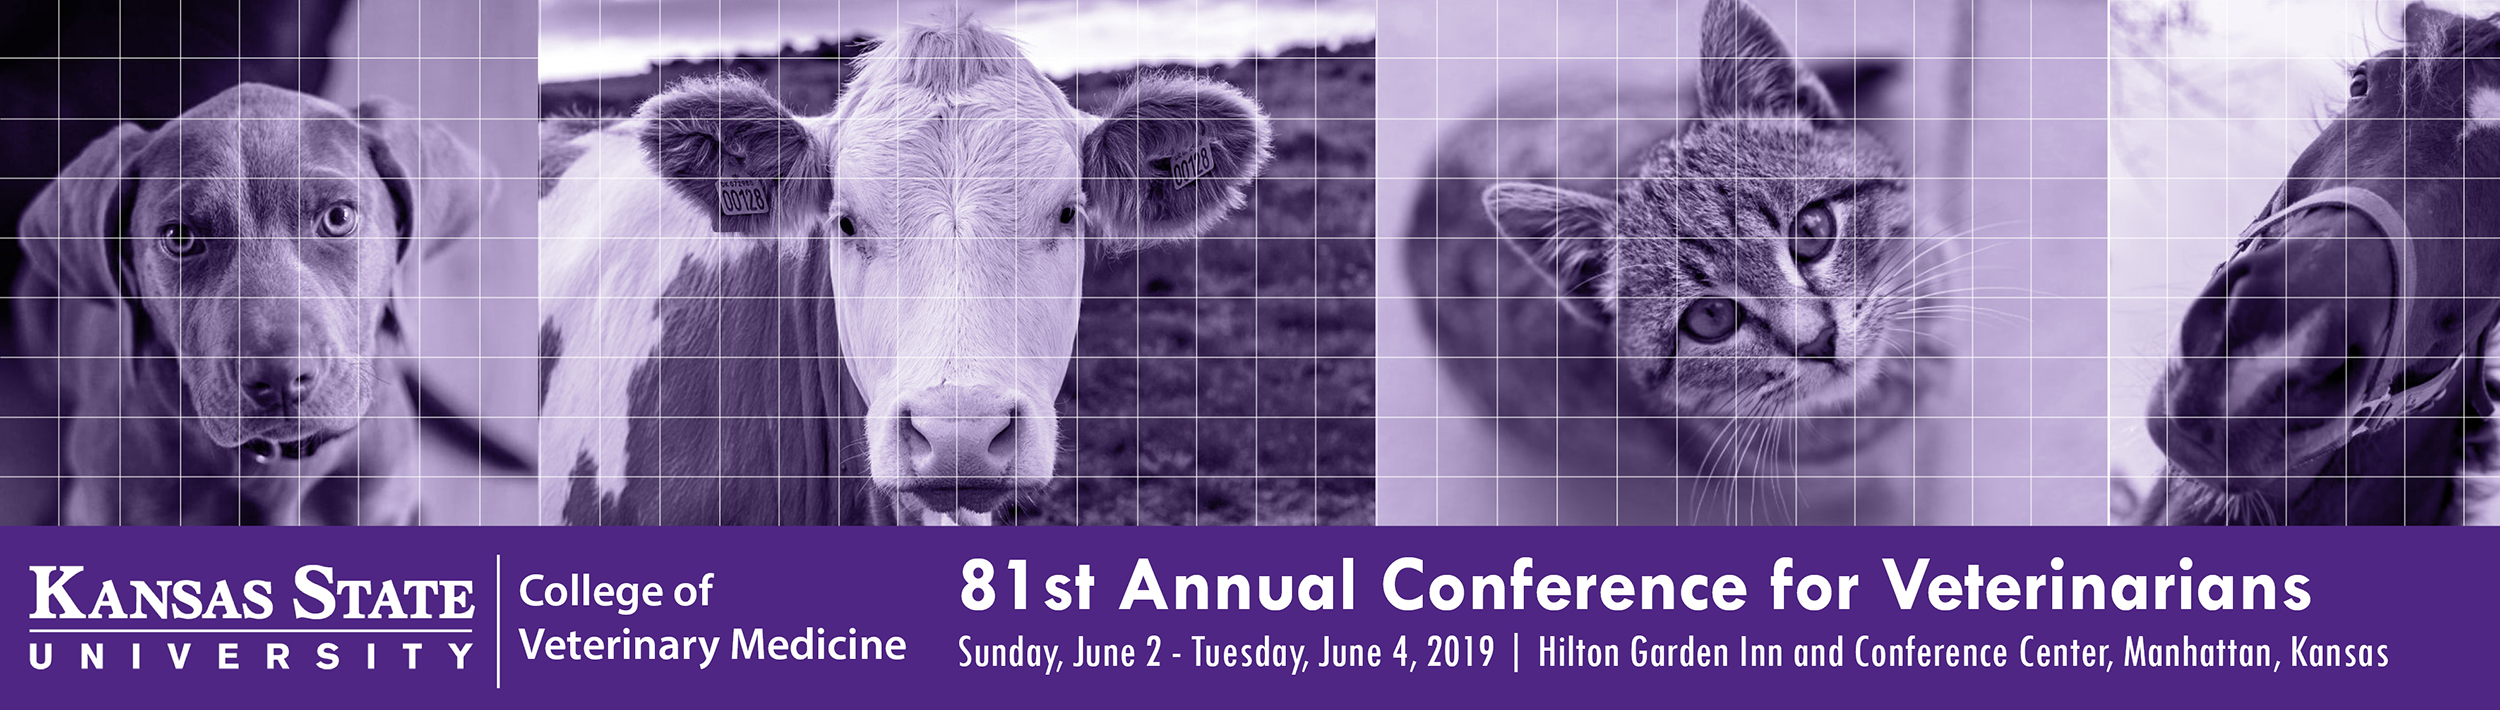 81st Annual Conference for Veterinarians